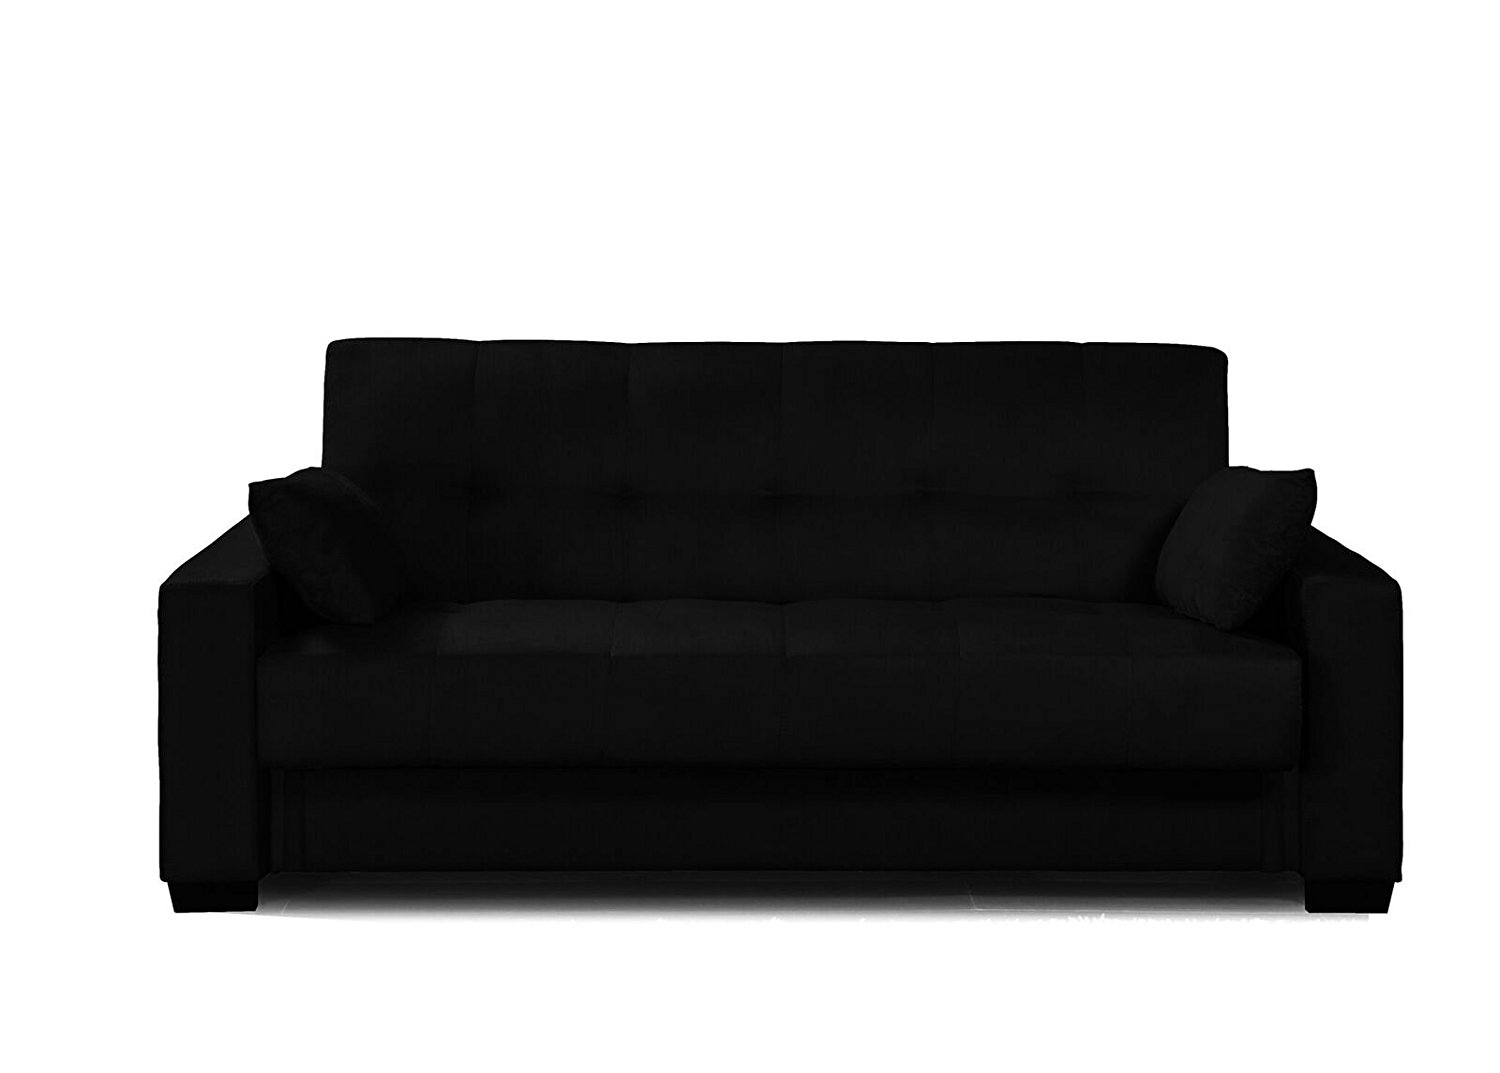 Quality Sofa For Less Microfiber Sofa Sleeper Bed And Lounger With Storage Black